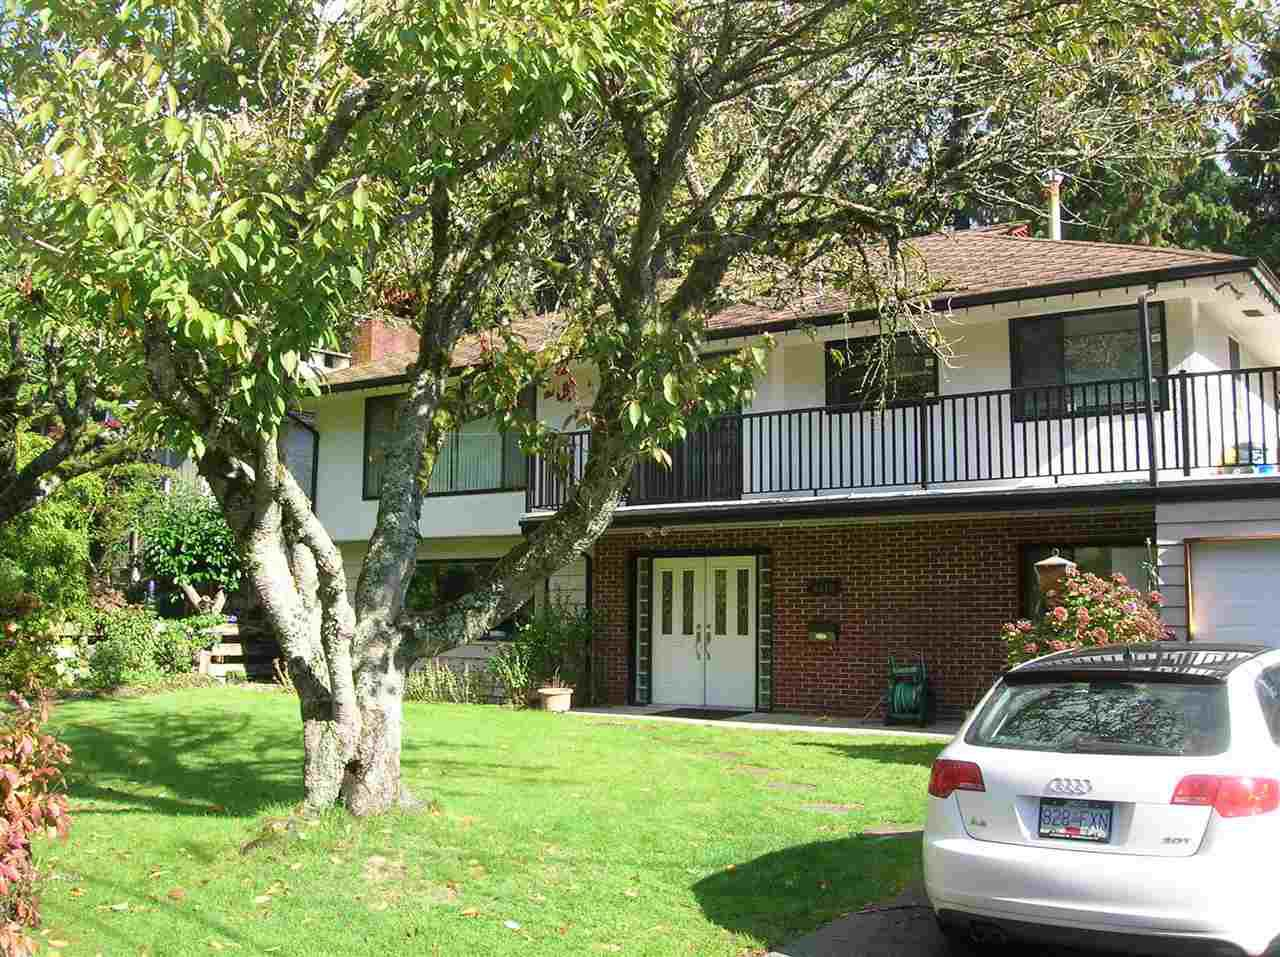 Main Photo: 4476 PRIMROSE Lane in NORTH VANC: Canyon Heights NV House for sale (North Vancouver)  : MLS®# R2008536